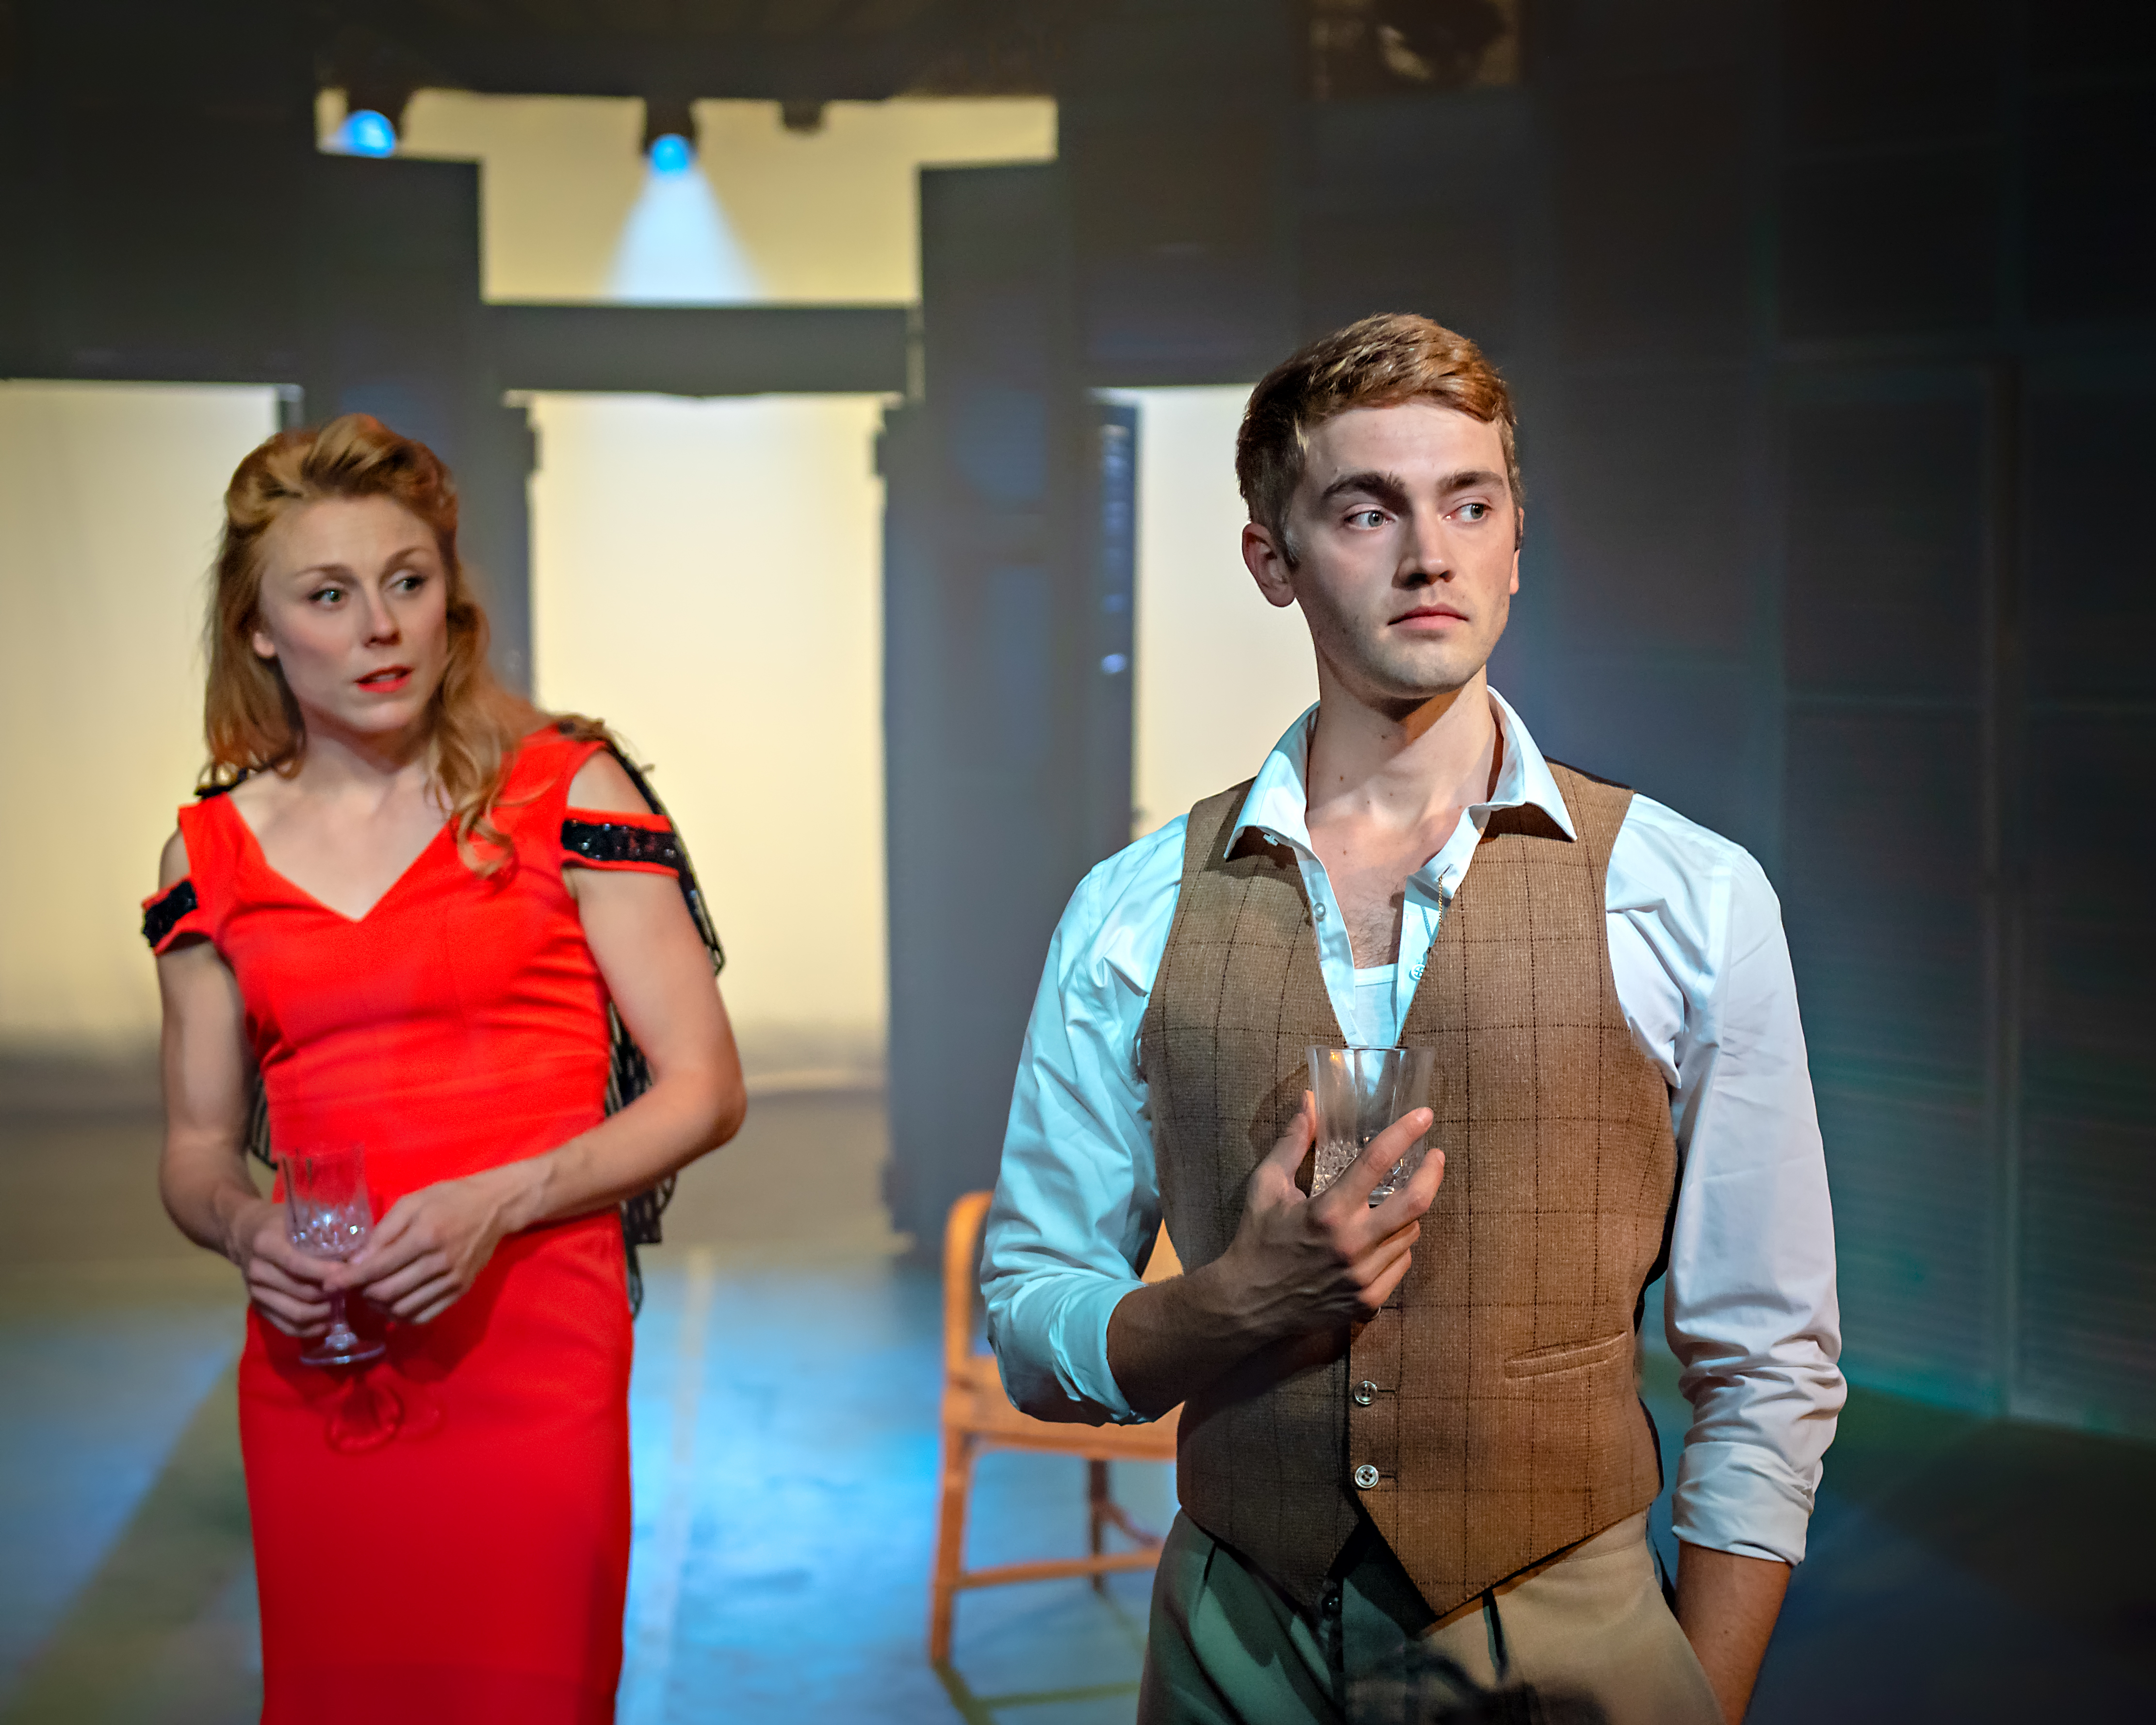 Kelly Price (Rose) & Felix Mosse (Alex) in Aspects of Love at Hope Mill Theatre 2. Credit Anthony Robling